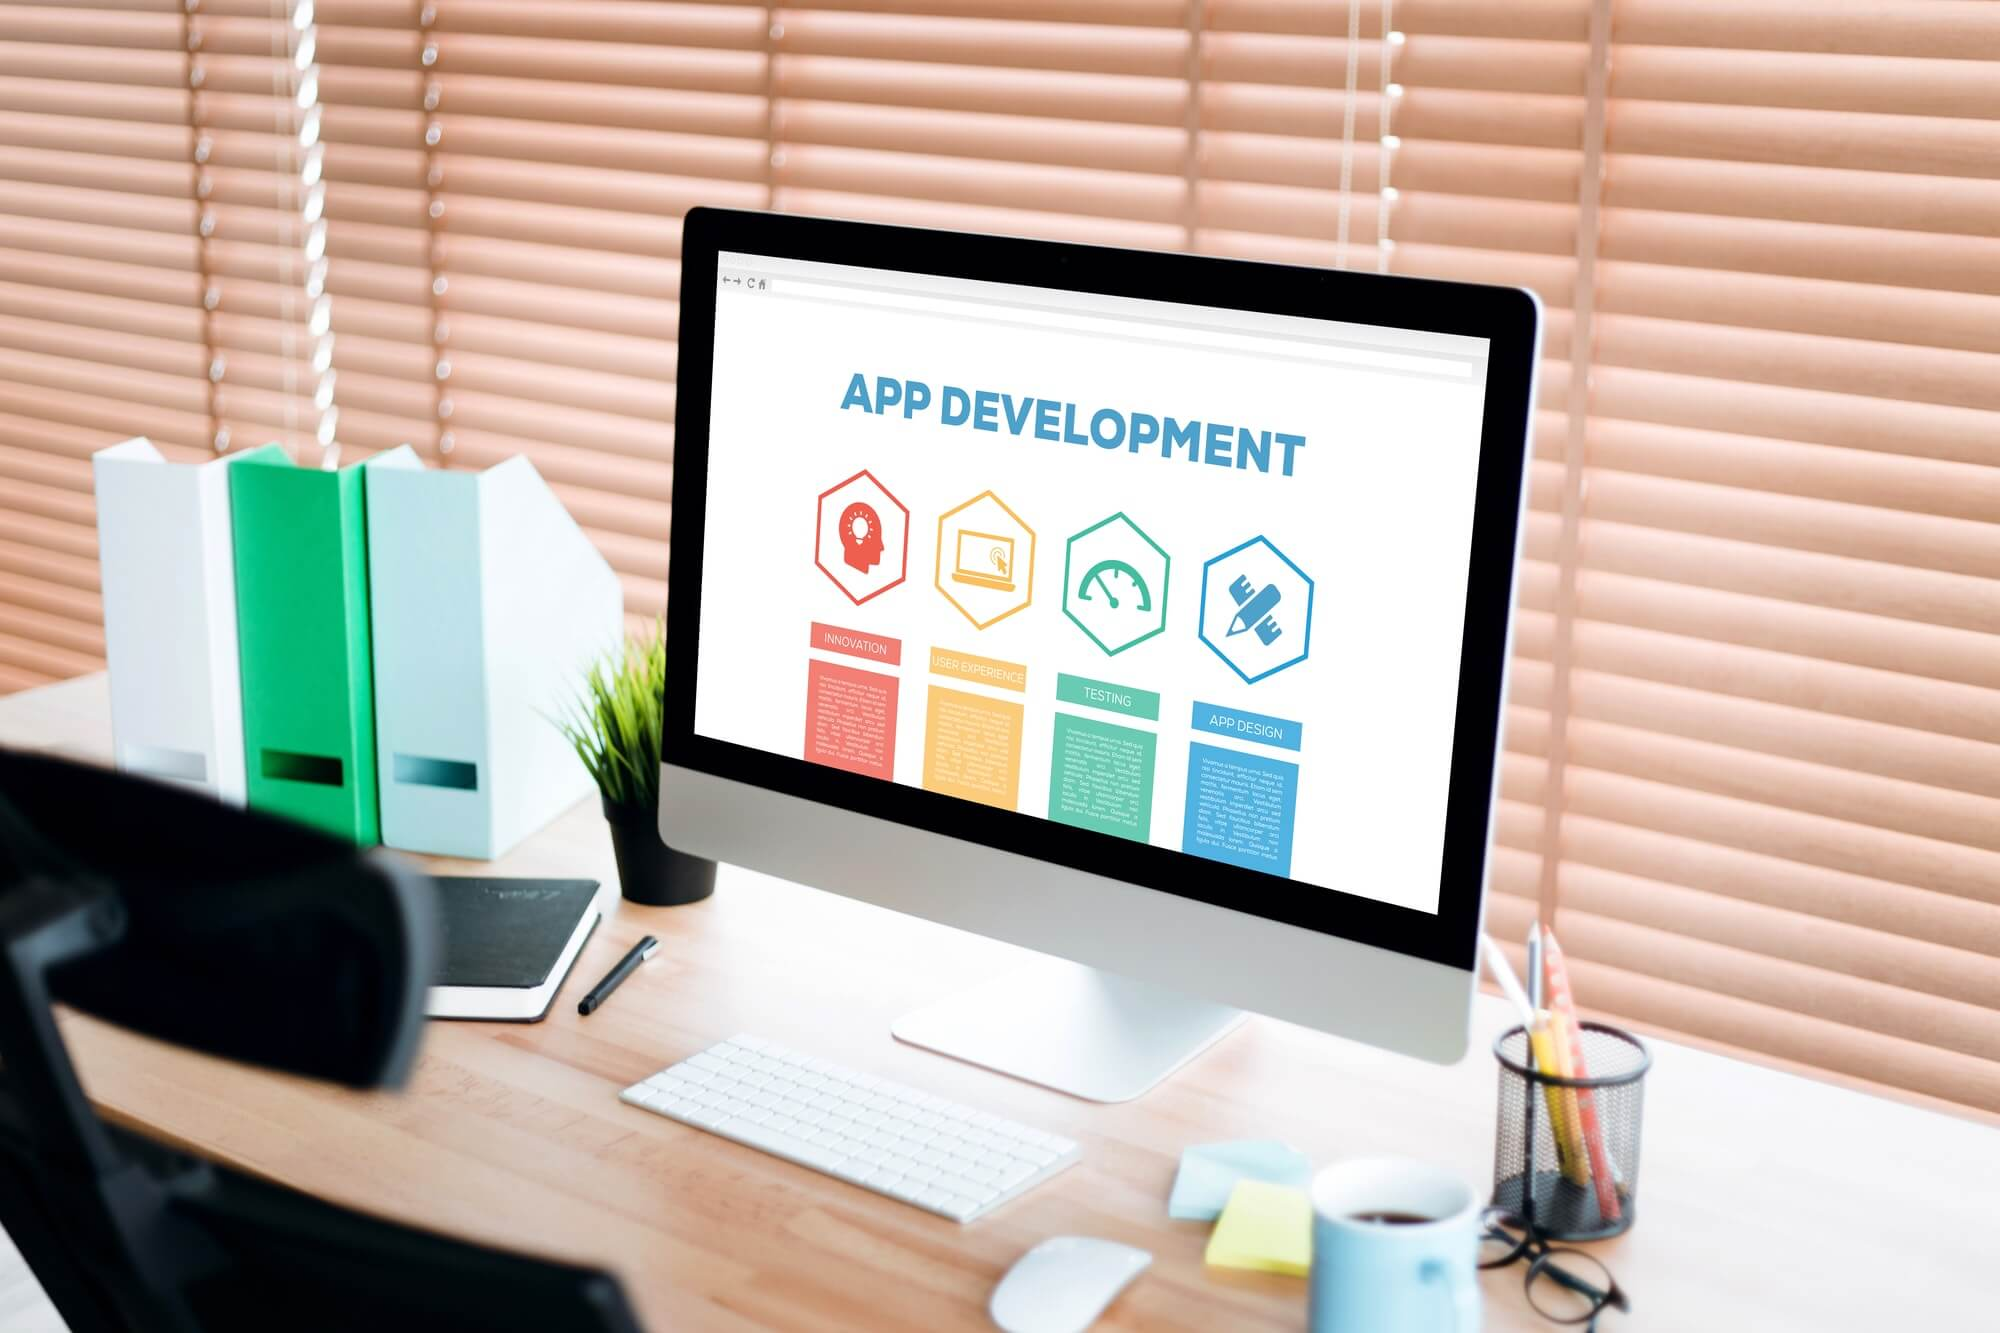 app development process, apps